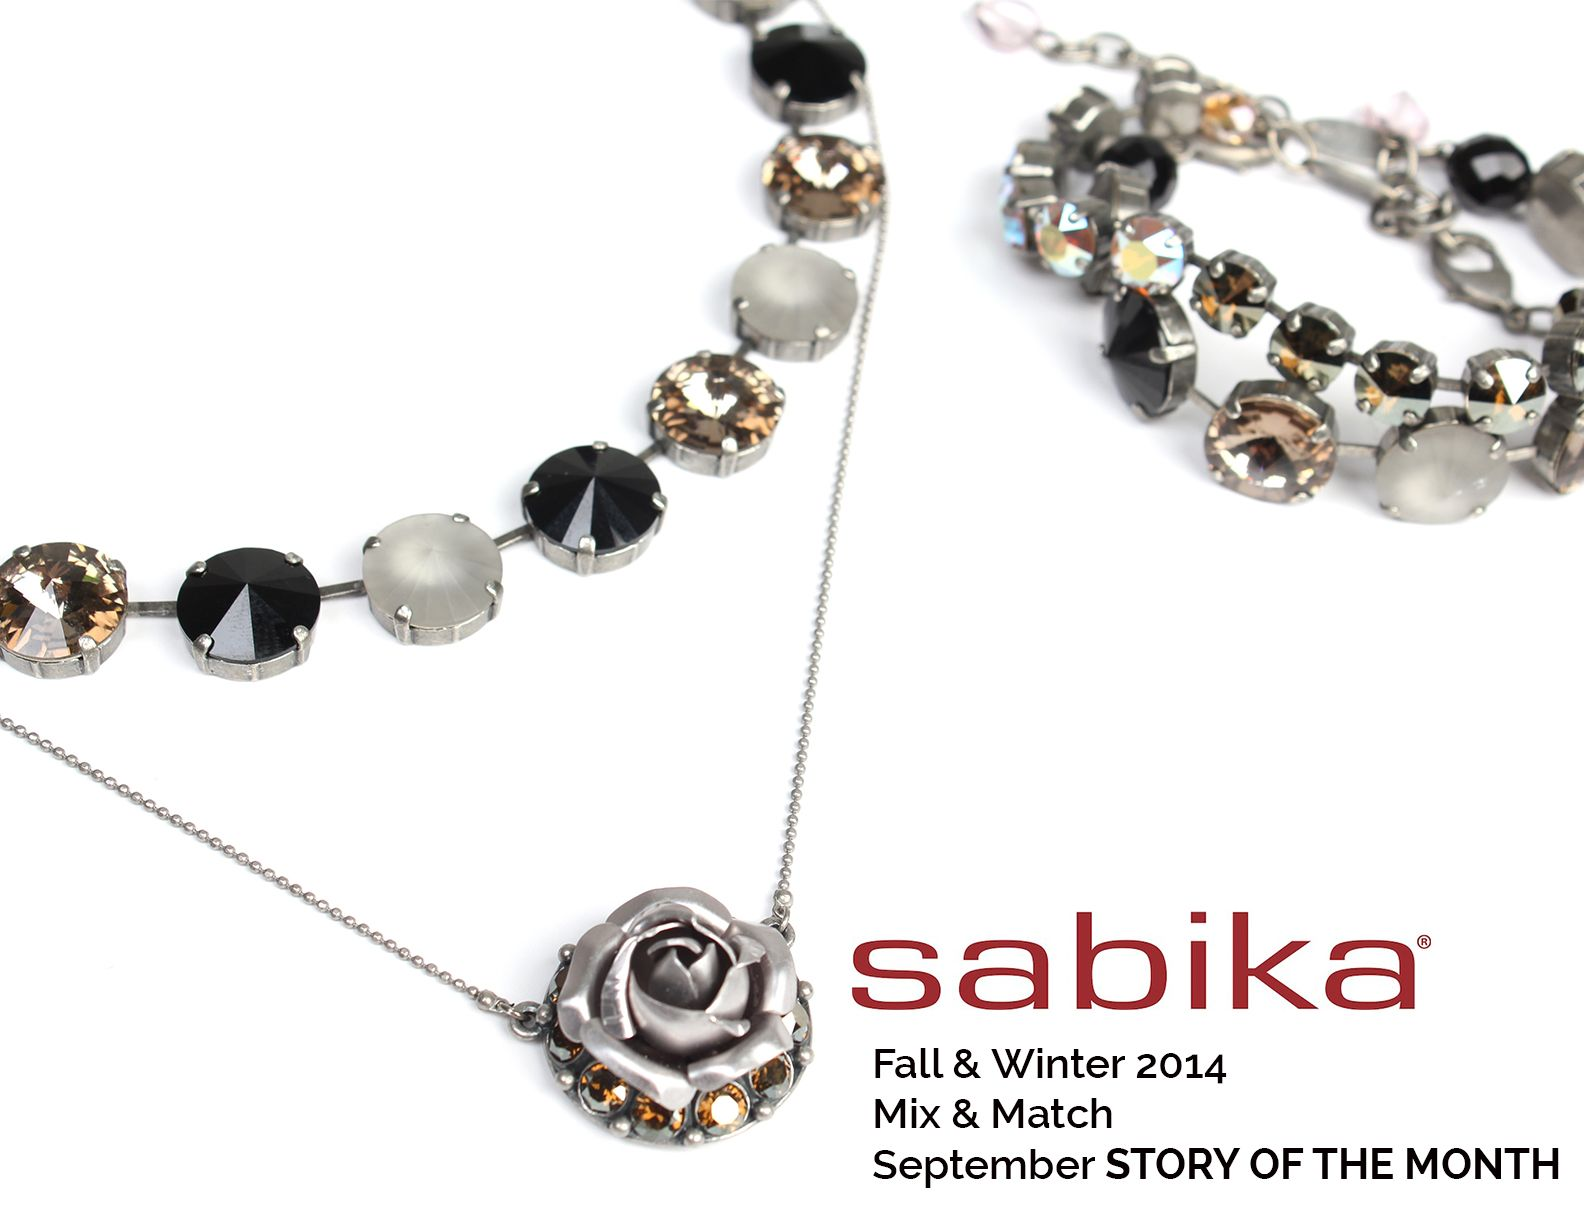 Sabika look necklace - Mixing Stones And Hand Crafted Elements Edition Cityscape Sabika Vienna Tm Choker And Rococo Rose Neckace With Edition Cityscape Vienna Tm Bracelet And